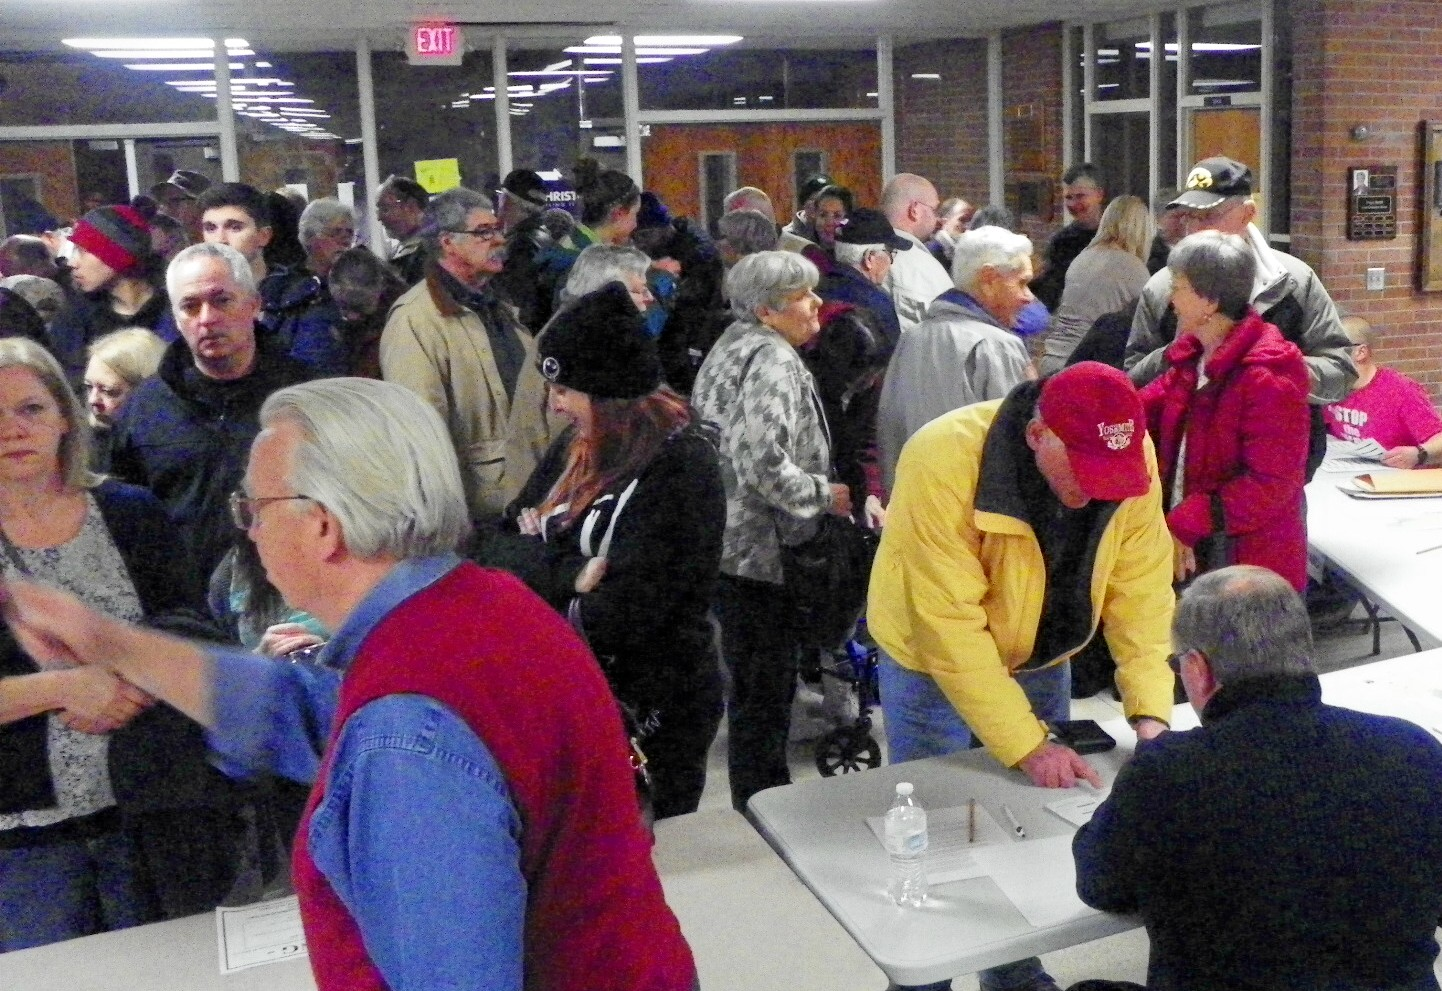 A huge voter turnout swamped workers at the registration table. Photo by Keith Brake